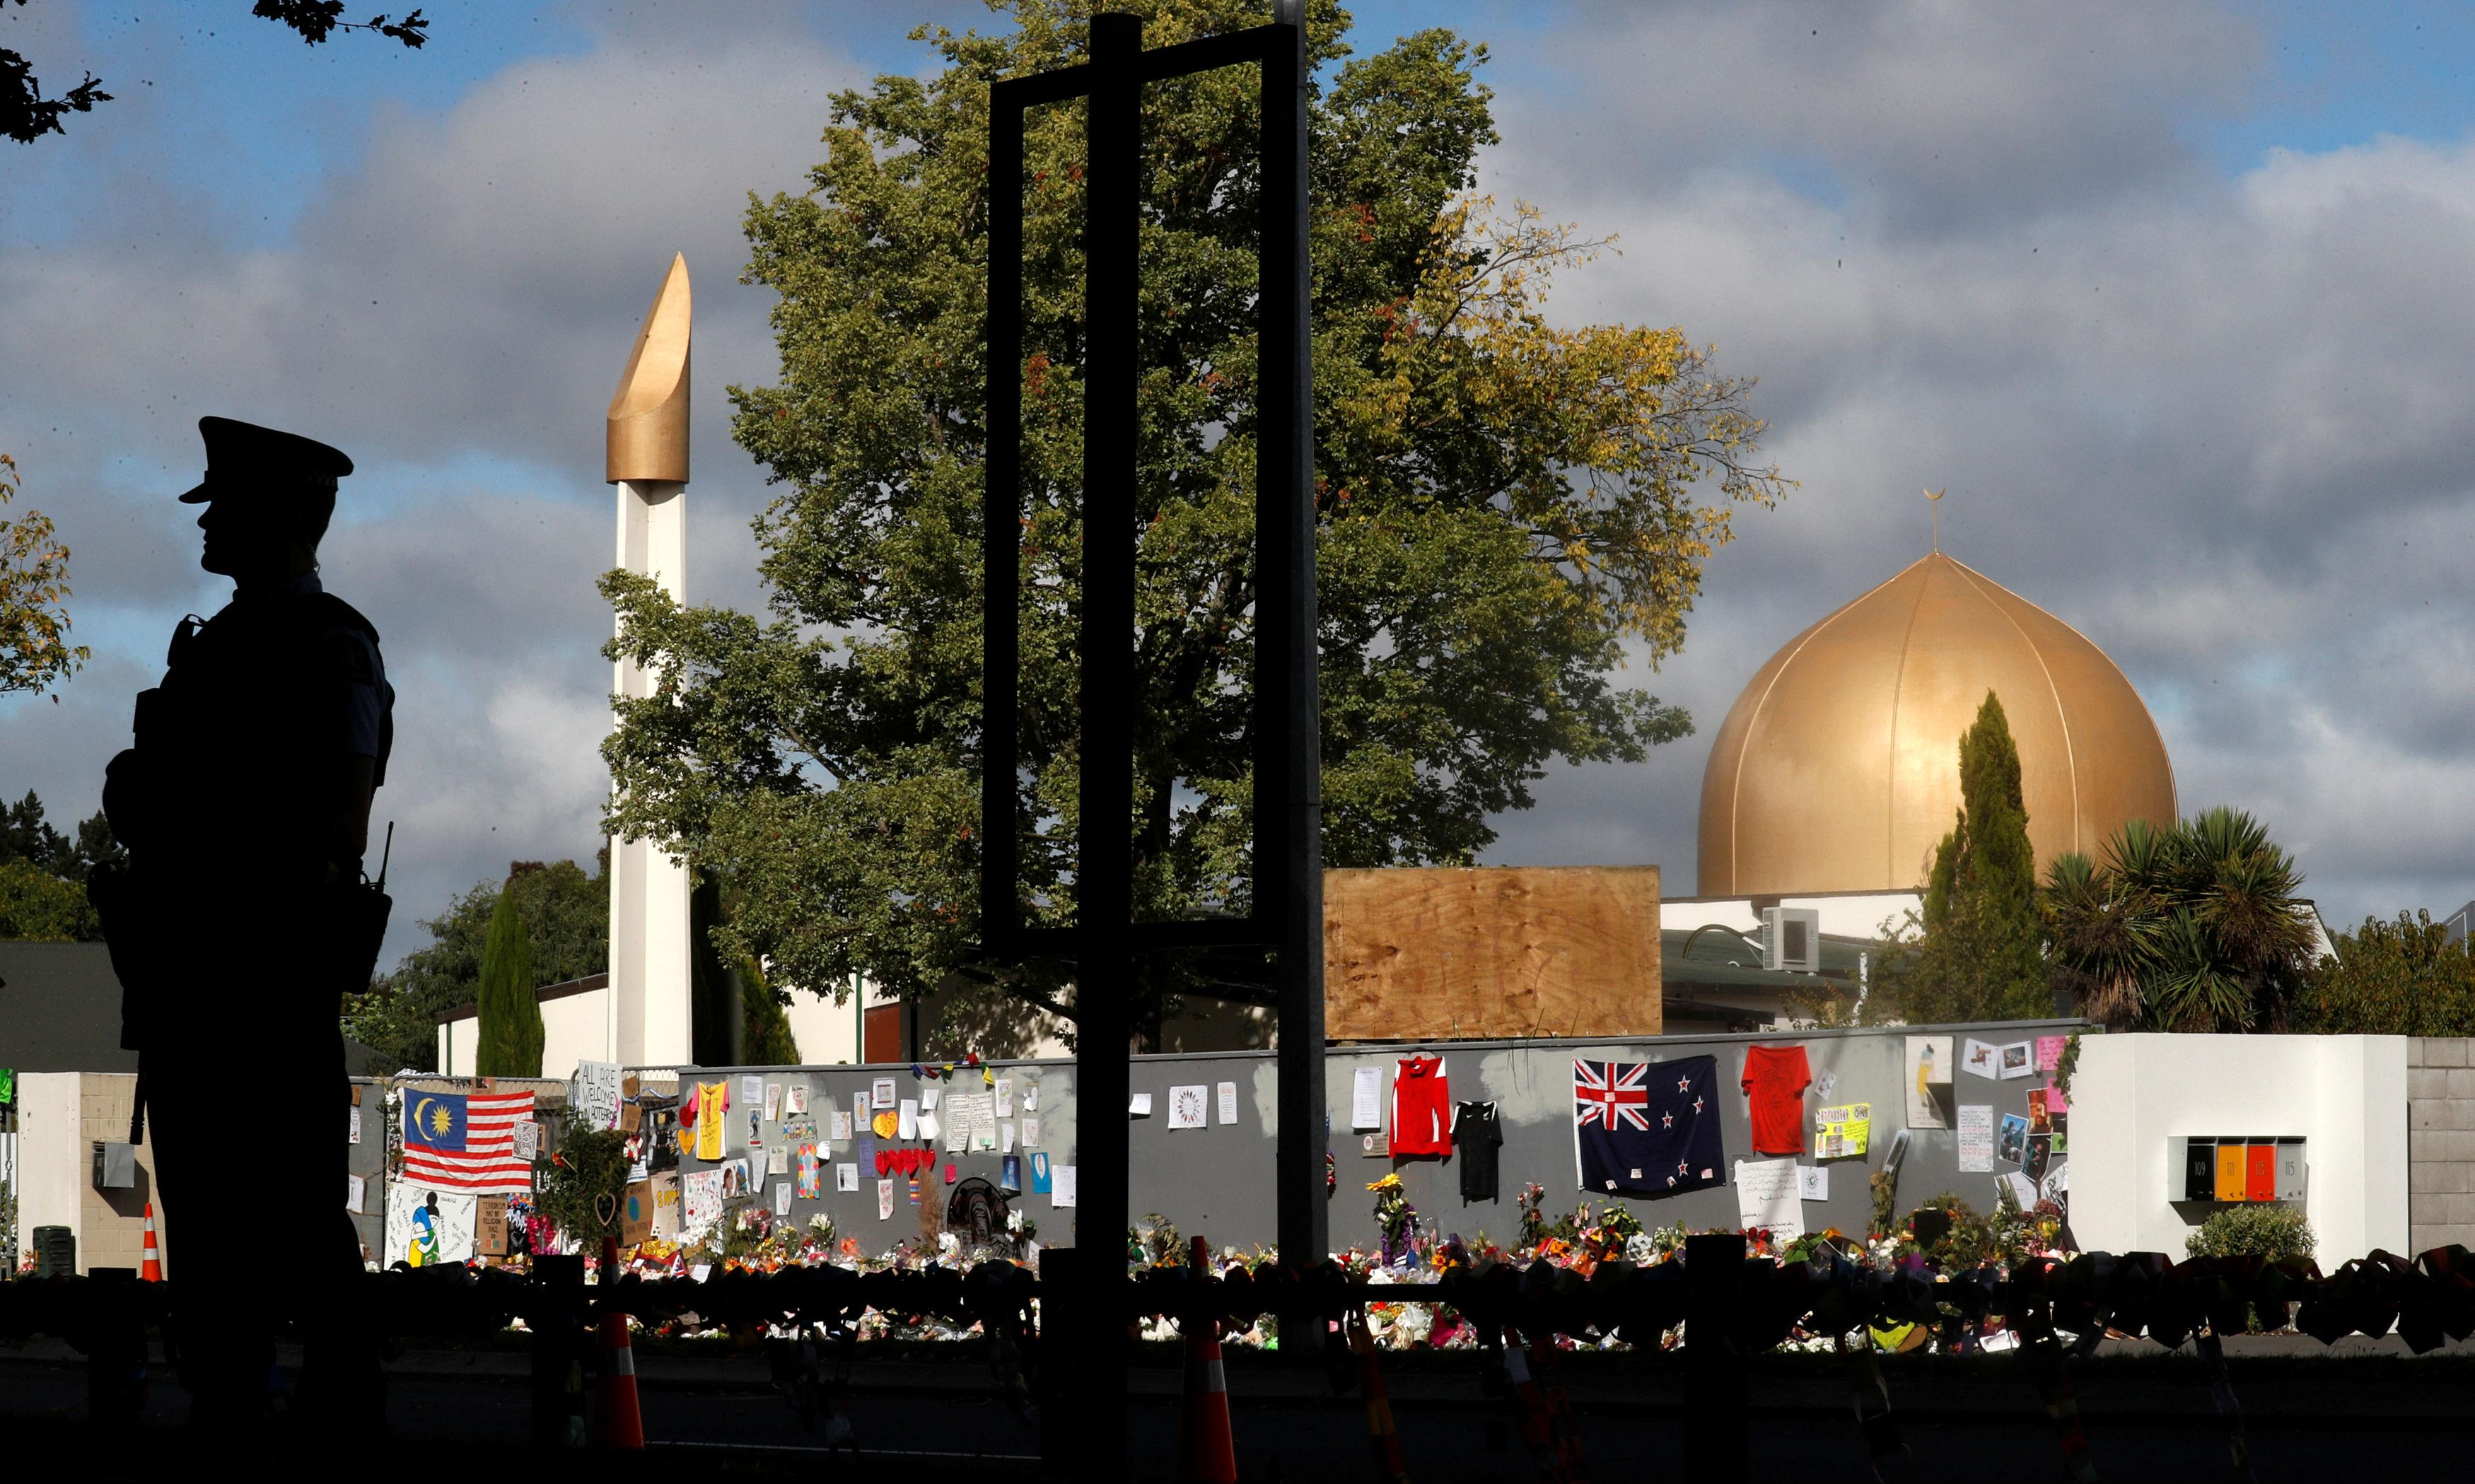 'It brings everything back': Christchurch despairs over white supremacist attacks